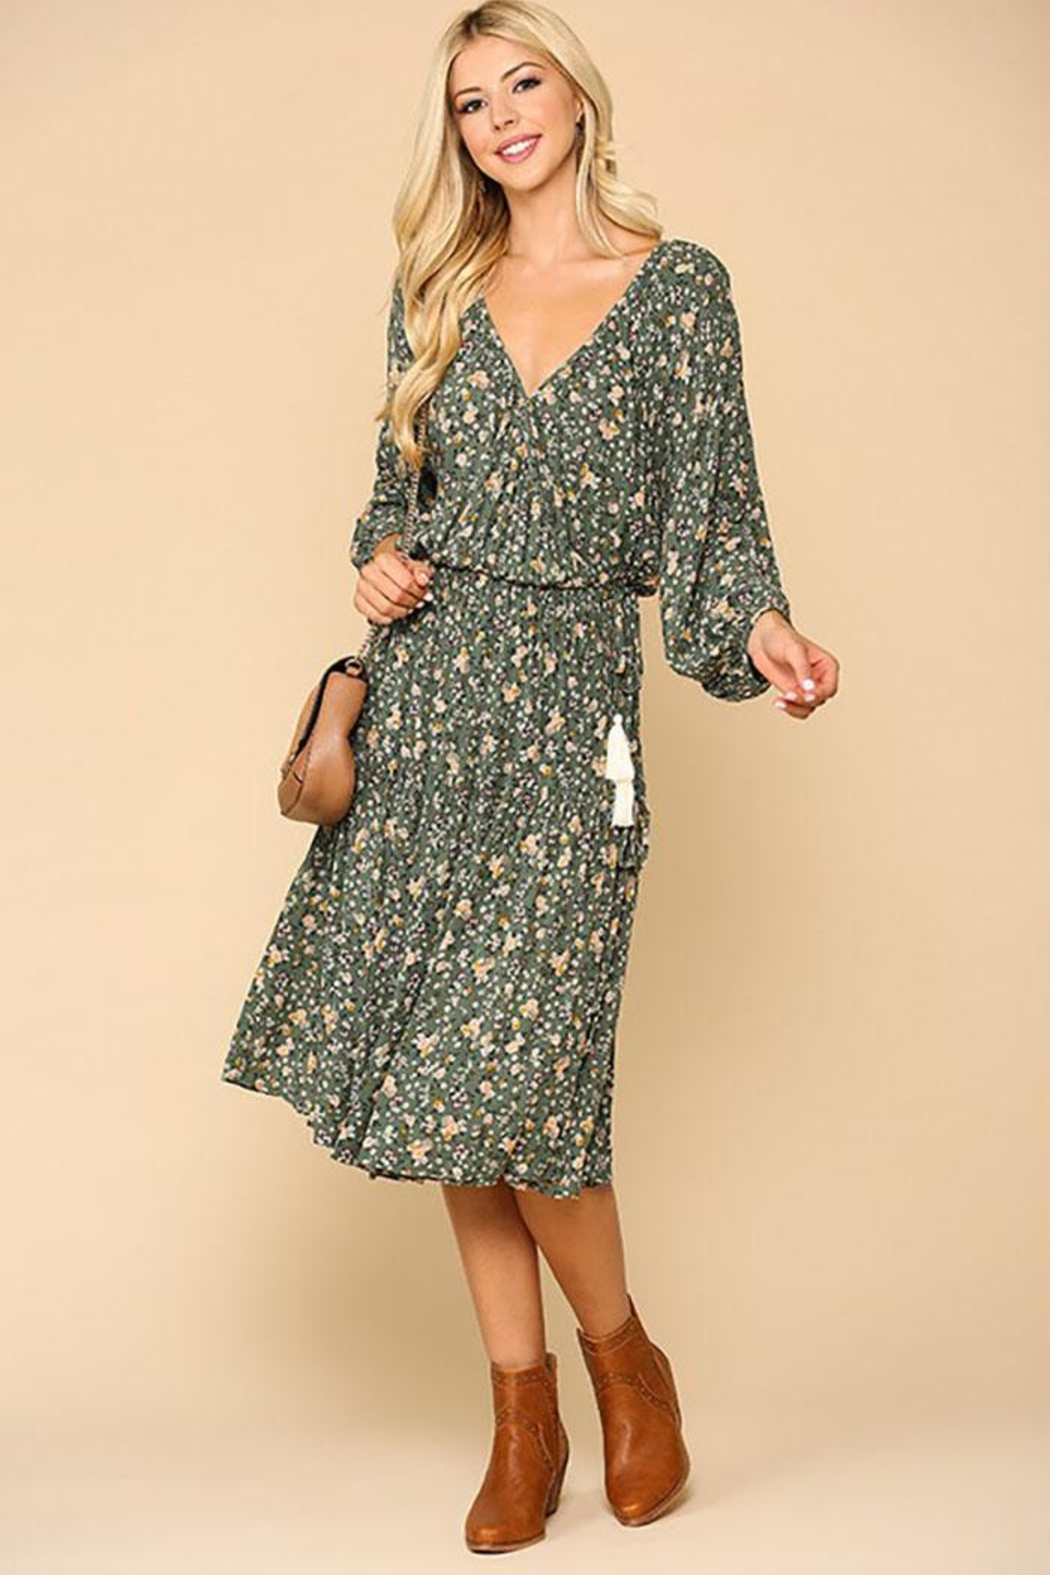 GiGiO Floral Puff Sleeve Wrap Midi Dress With Tassle Tie - Front Full Image